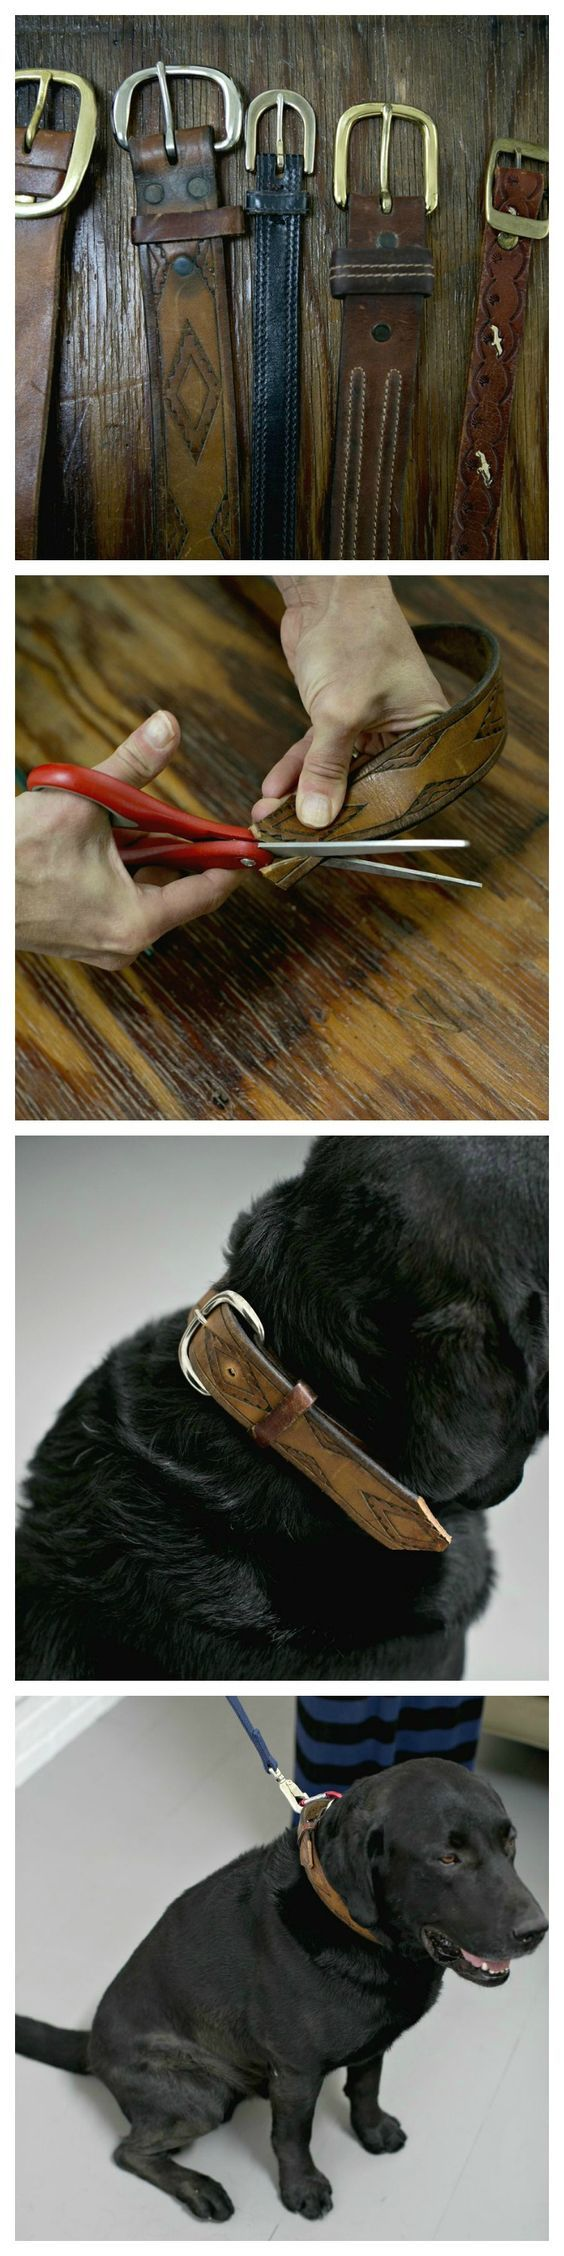 10 Stuning Diy Dog Collar Ideas You Will Love >>  ❤ See more: http://fallinpets.com/stuning-diy-dog-collar-ideas-will-love/ ❤ See more: http://fallinpets.com/diy-dog-feeding-station-ideas-pet-will-like/